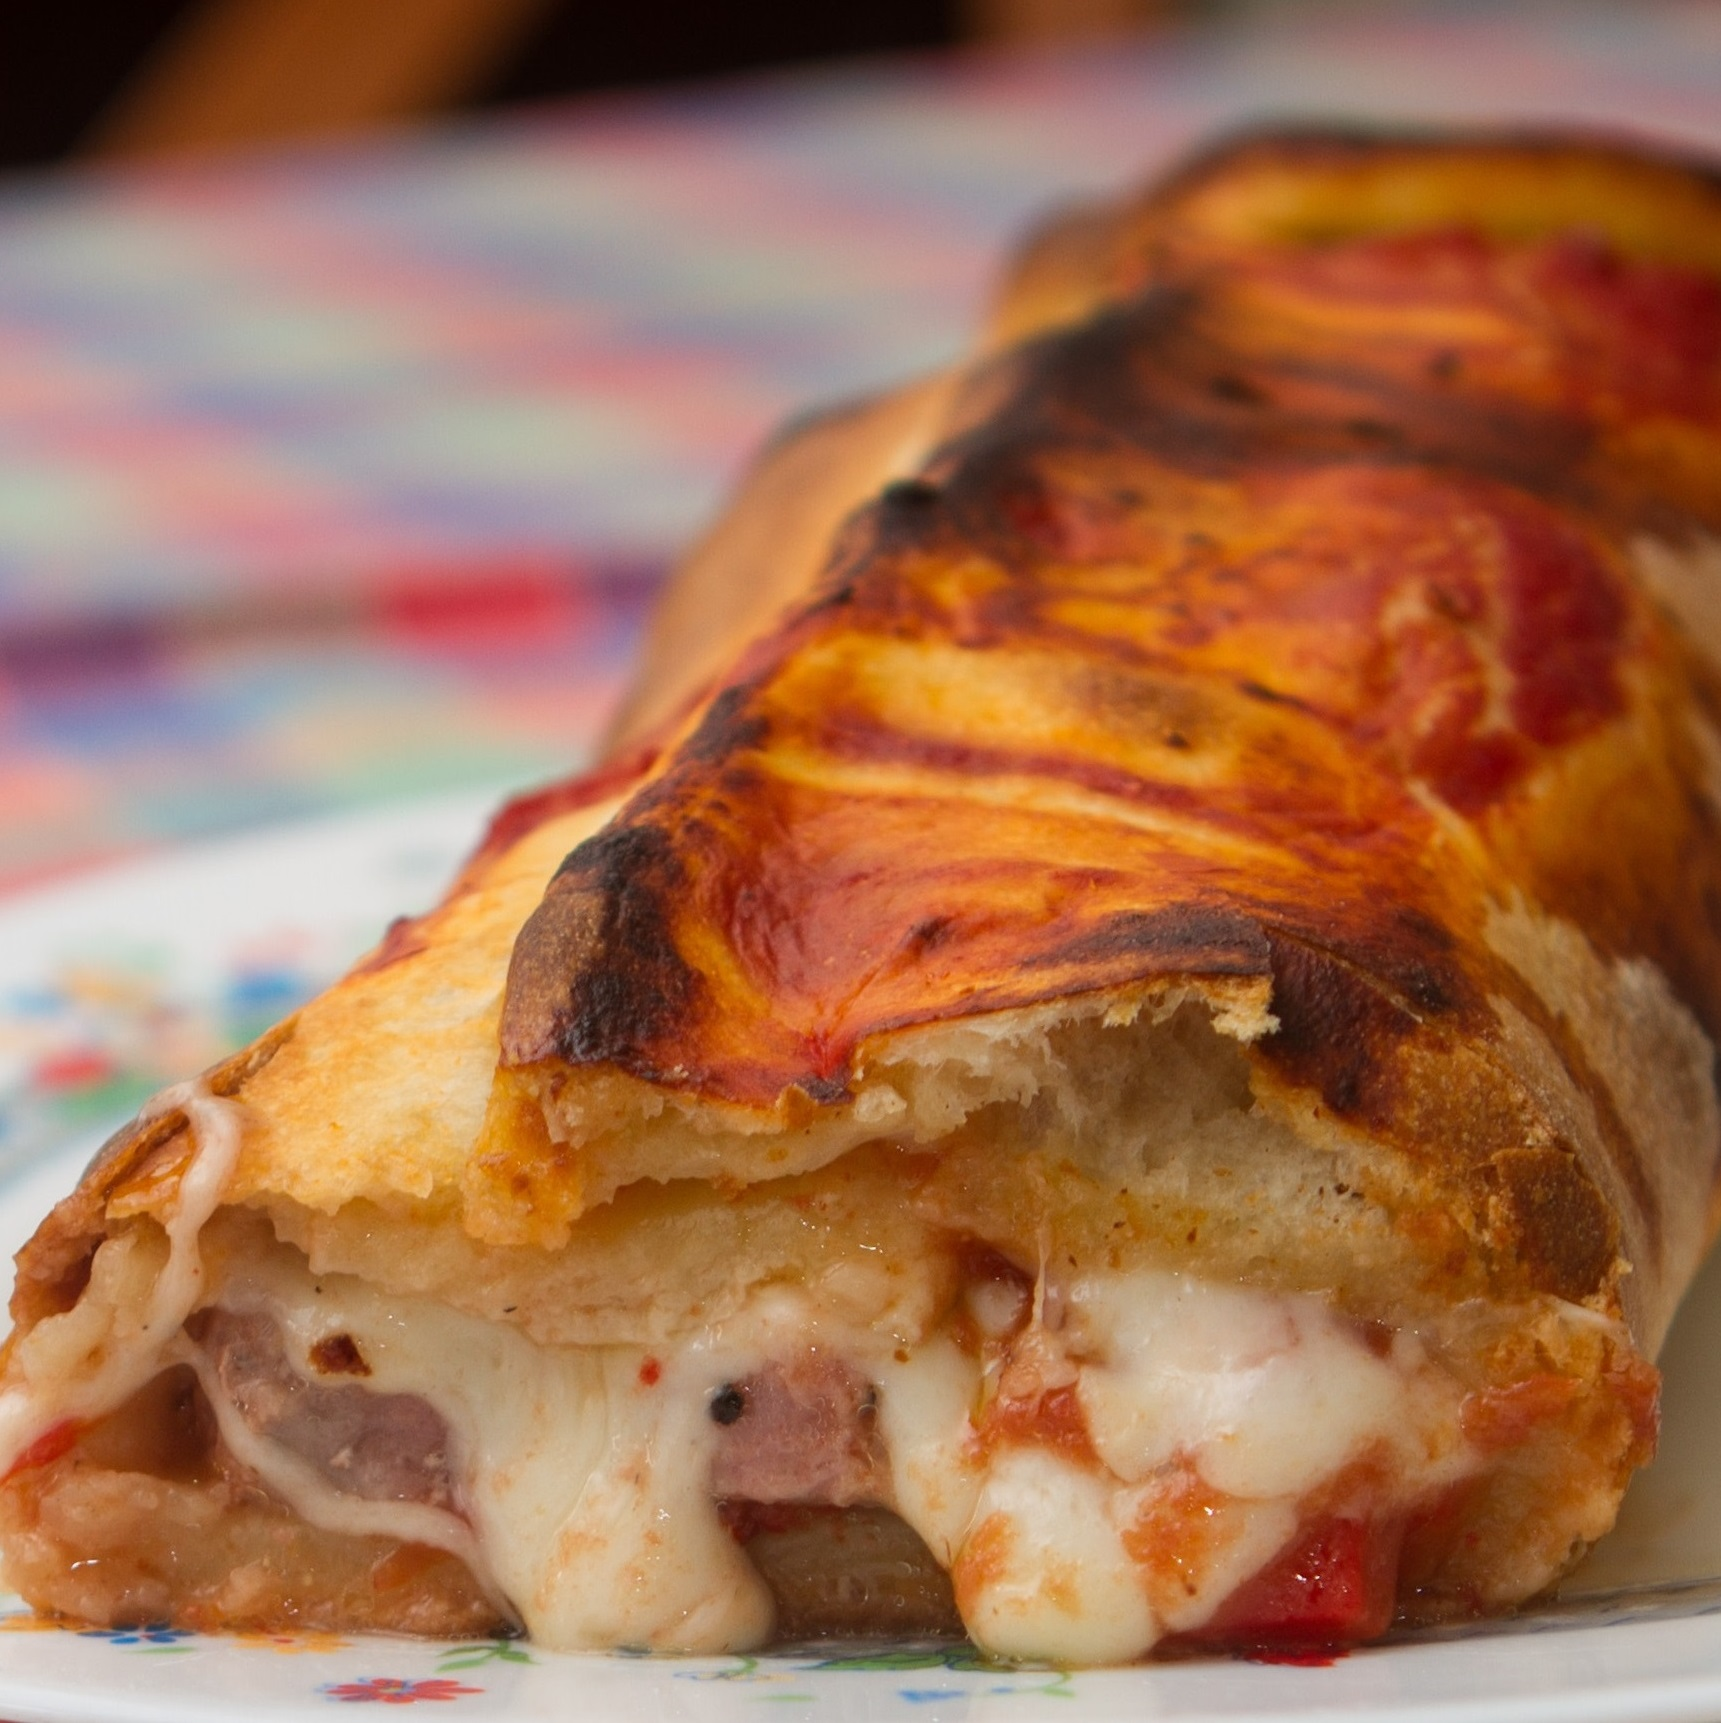 Onion & Cheese Calzone